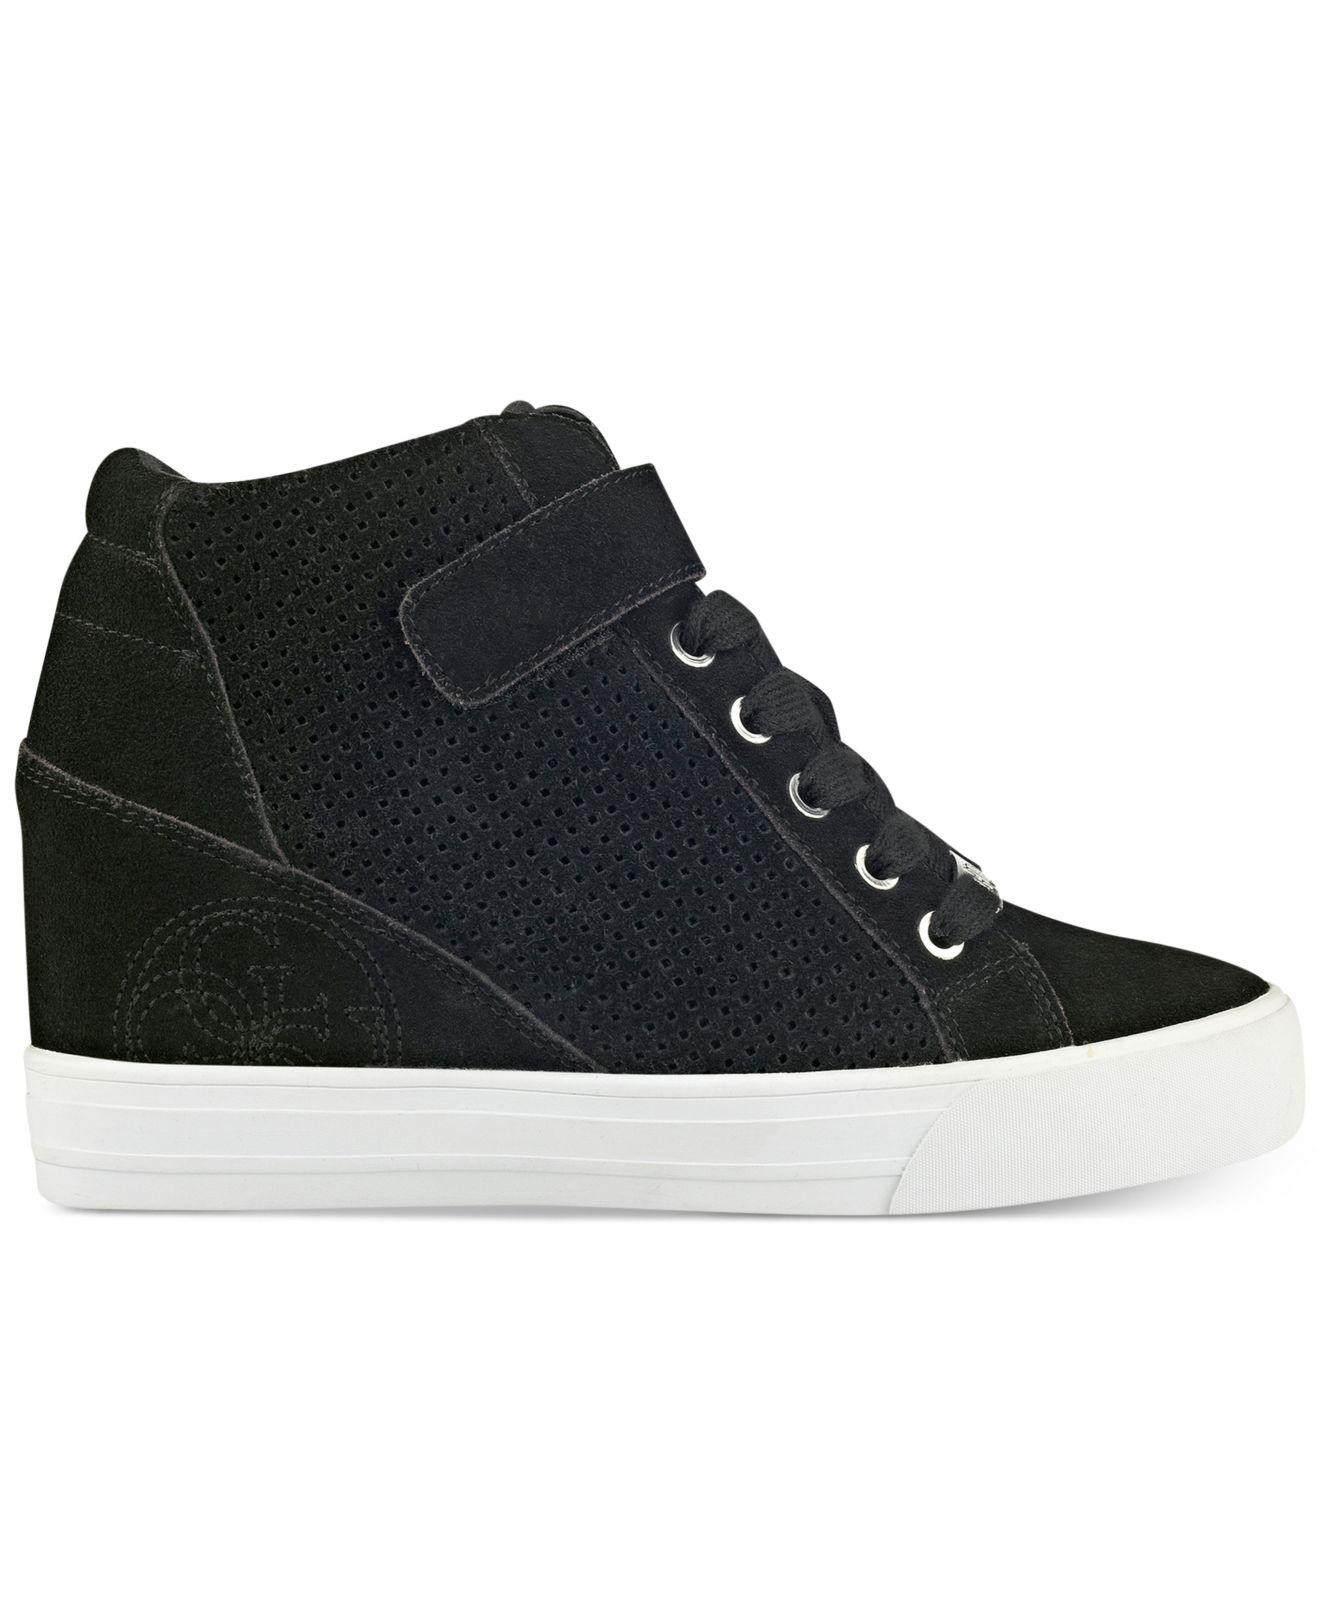 ac4791c6f5d Lyst - Guess Women s Decia Wedge Sneakers in Black